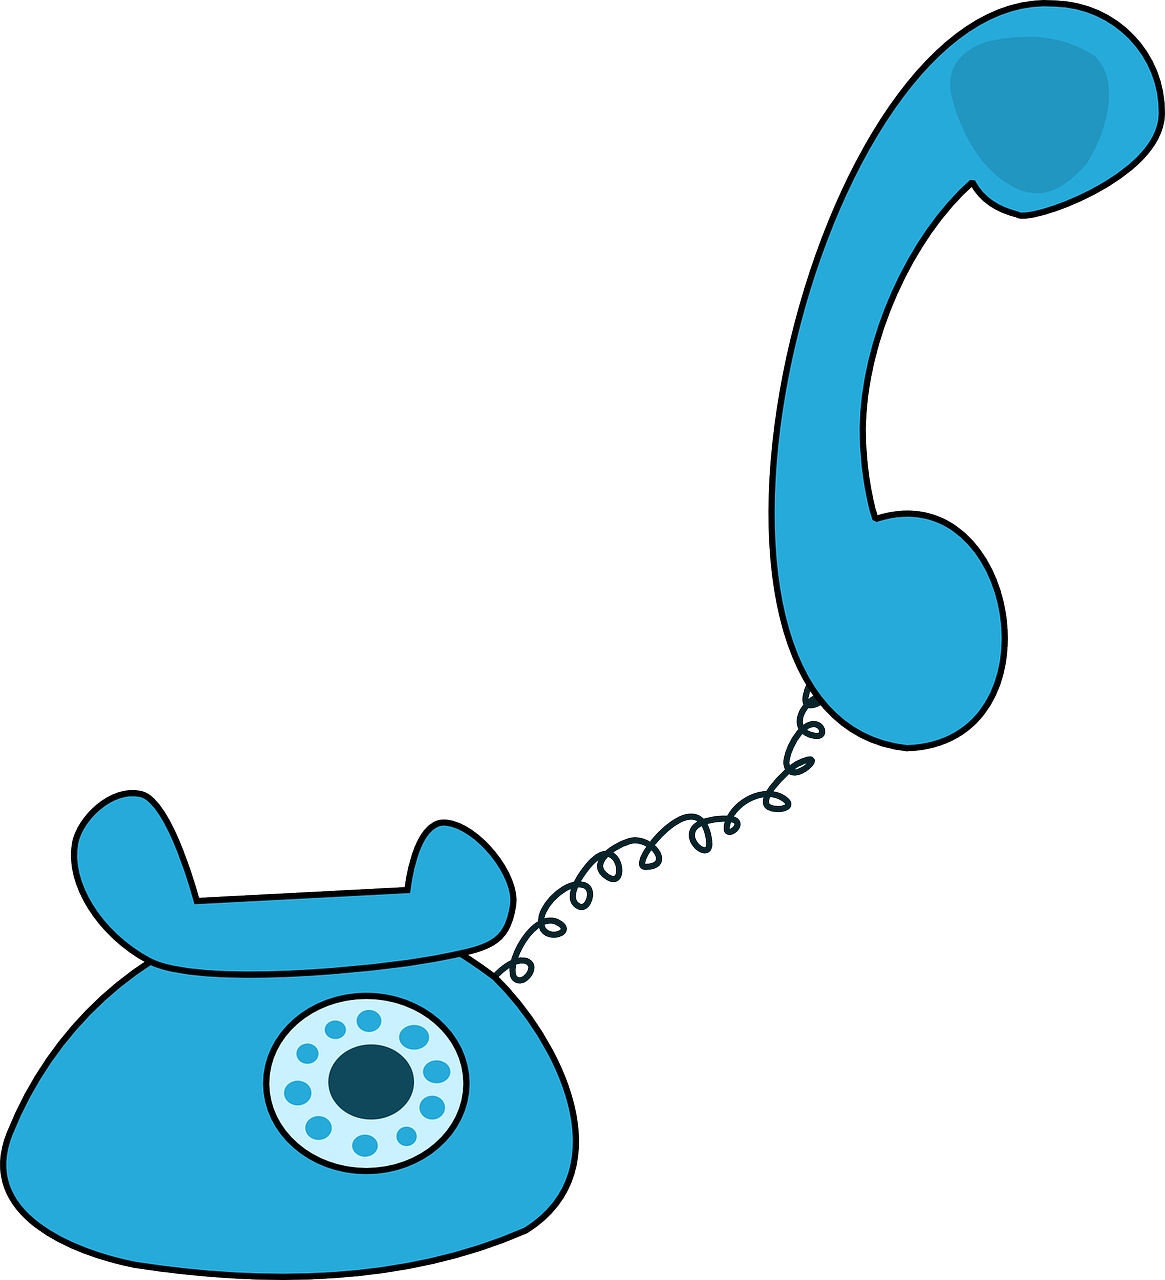 Telephone clipart blue telephone Clip Telephone Cartoon Art Free